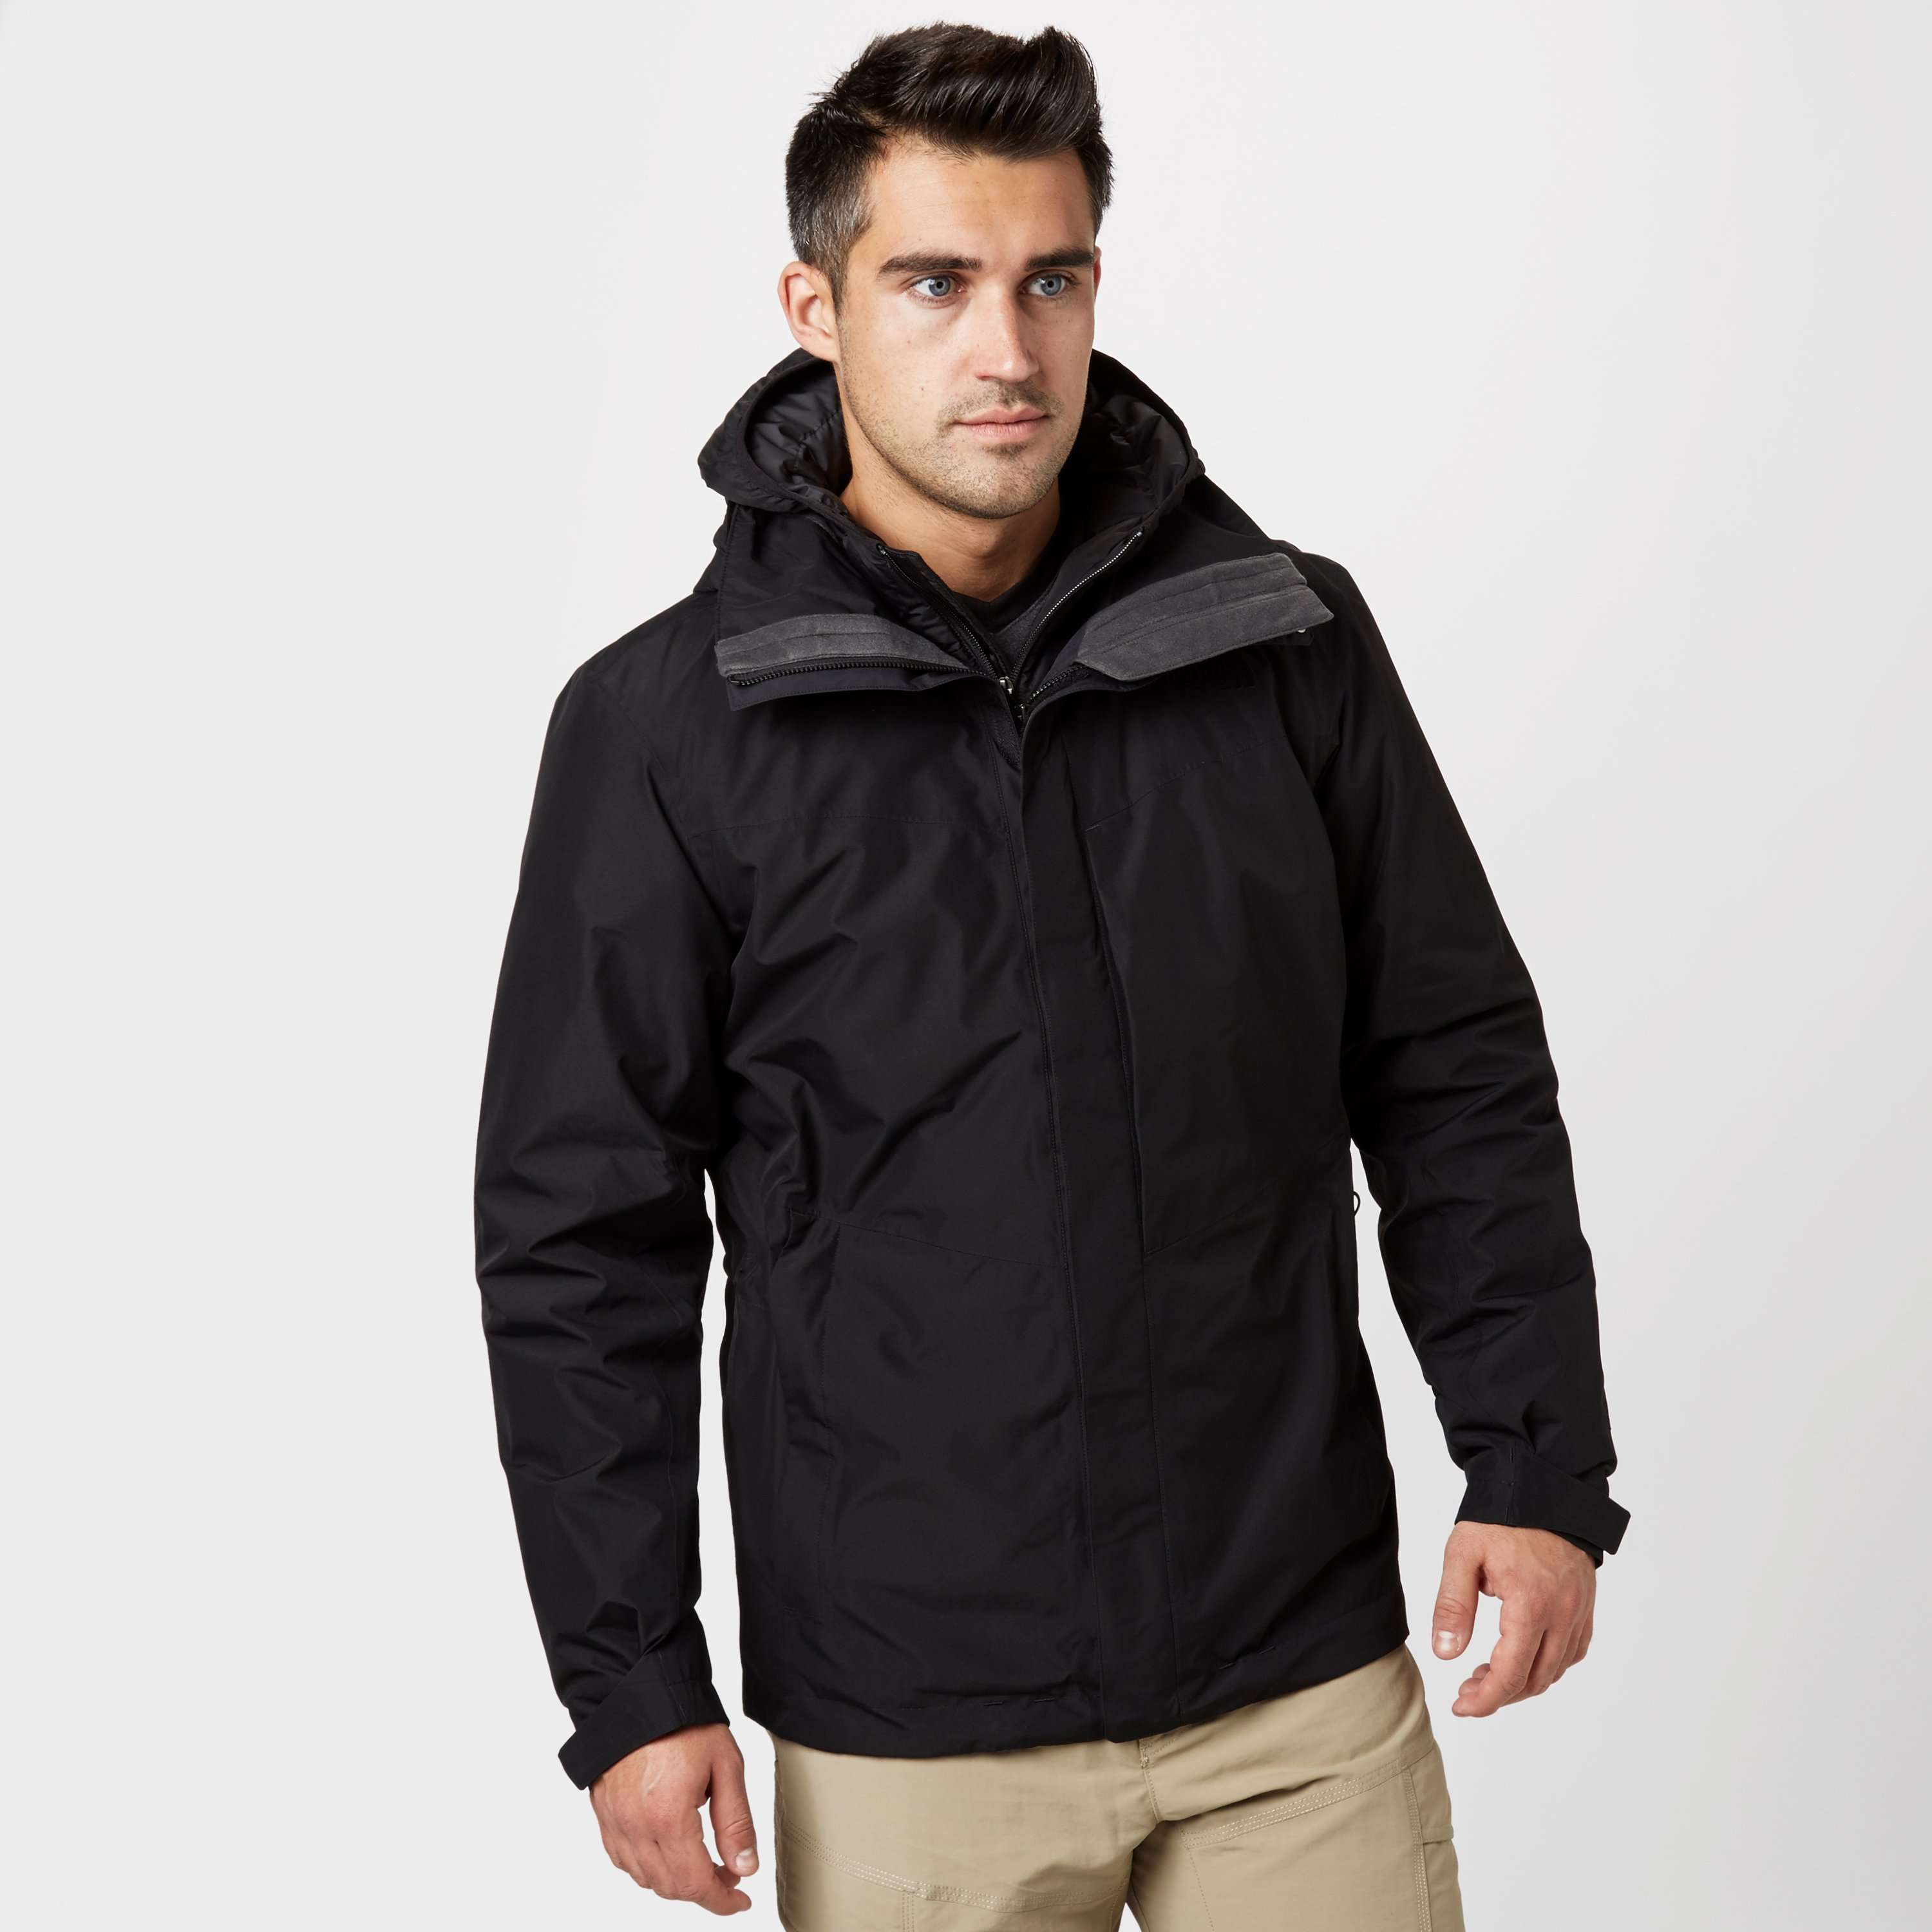 THE NORTH FACE Men's GORE-TEX® All Terrain Jacket